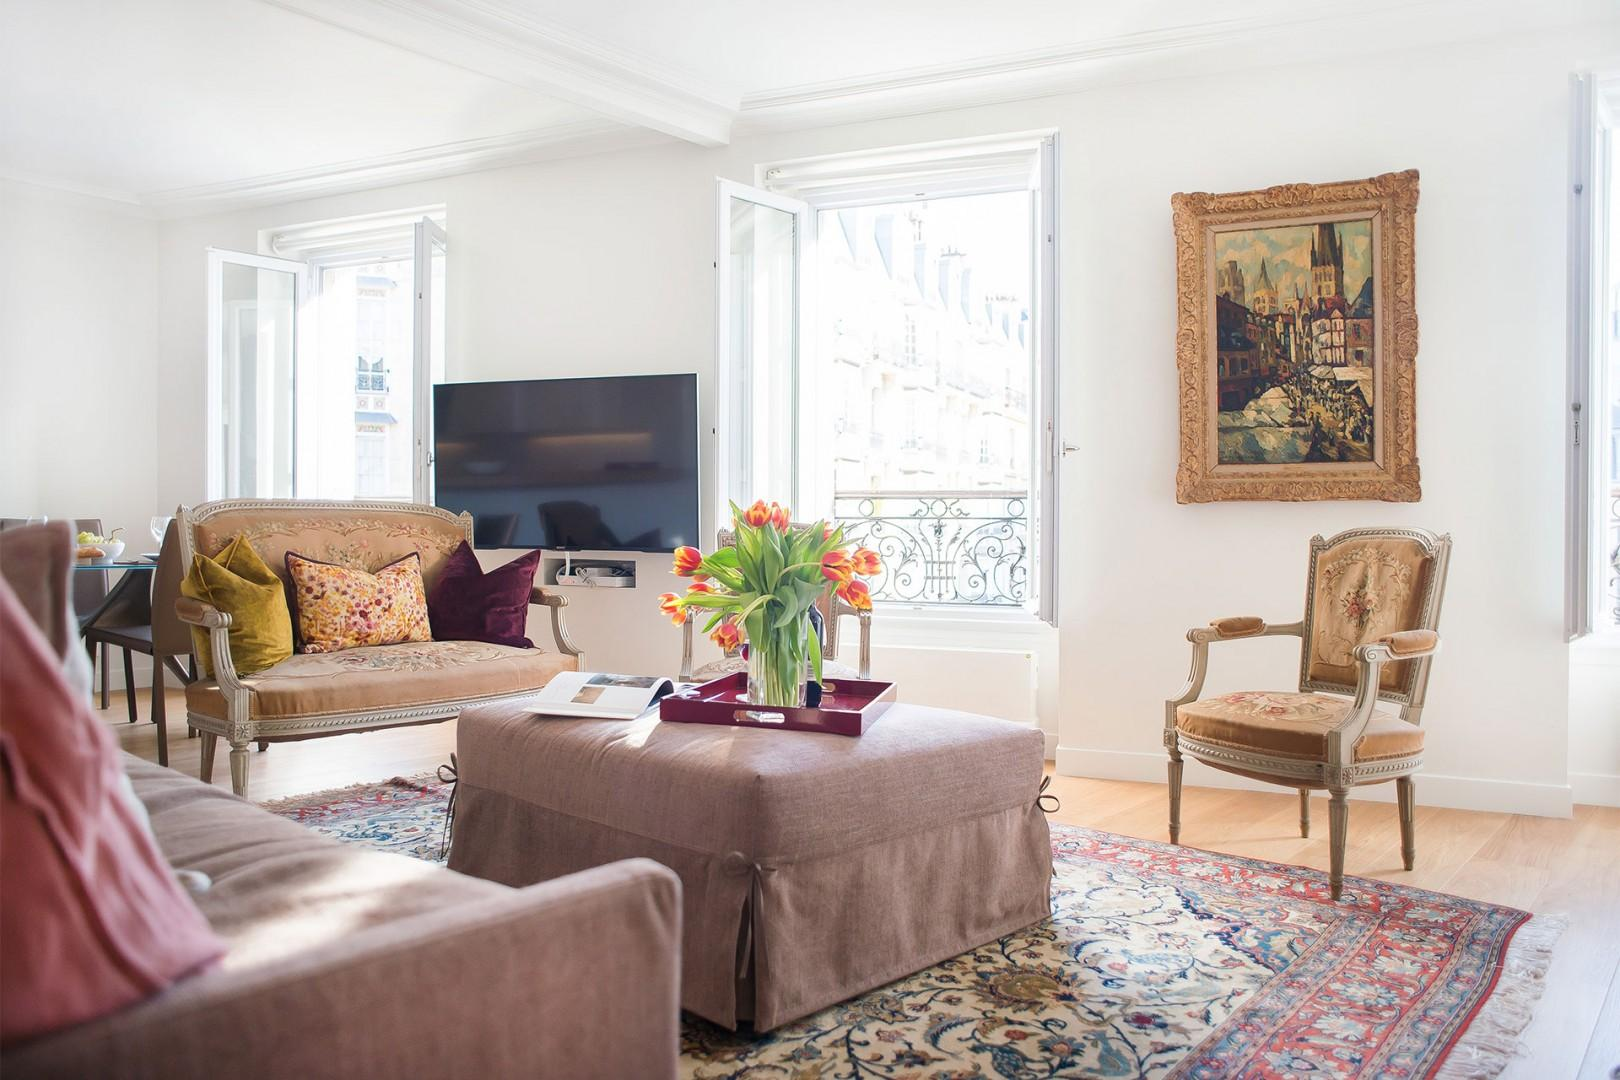 The apartment has been decorated with a mix of antiques and modern furnishings.